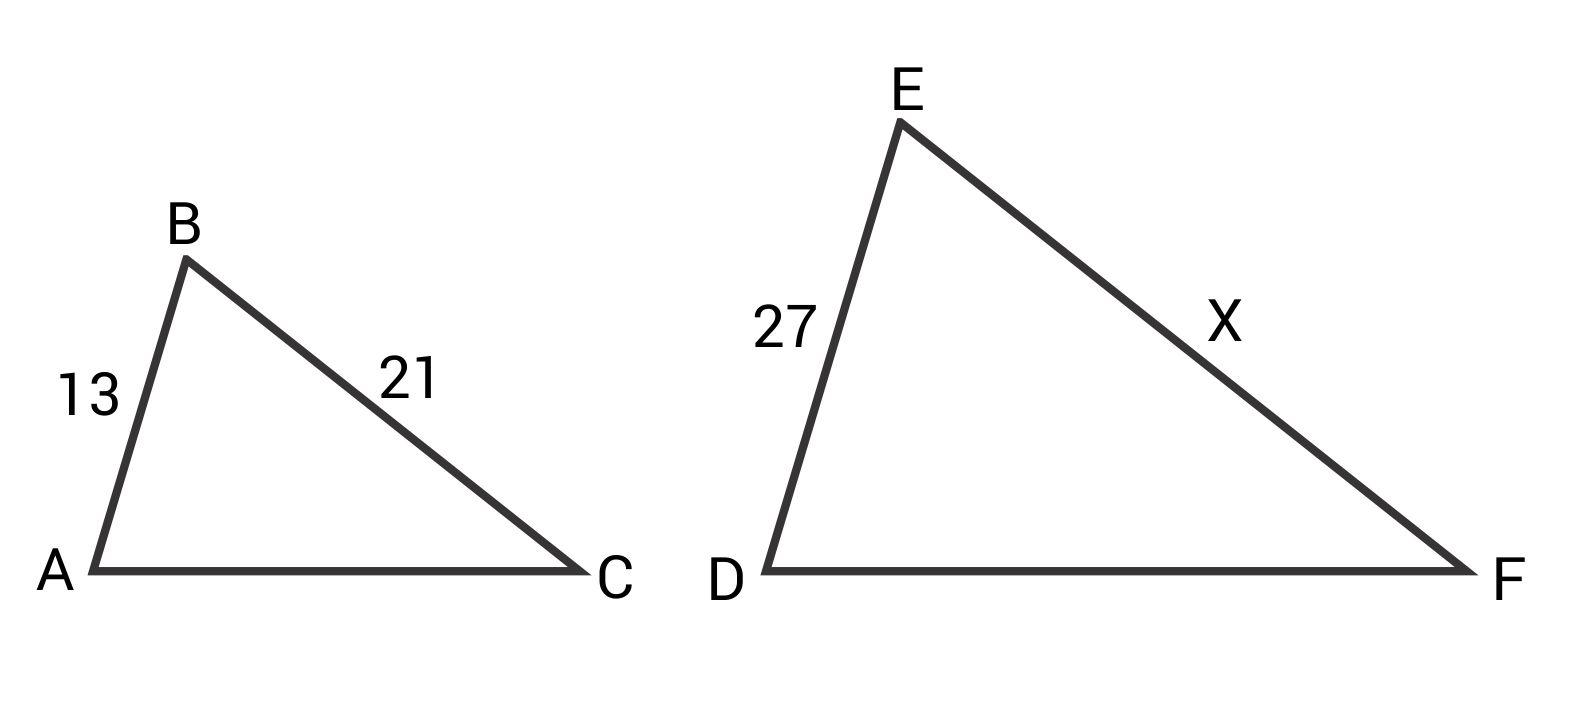 Similar triangles with side lengths 13 and 21 versus 27 and x